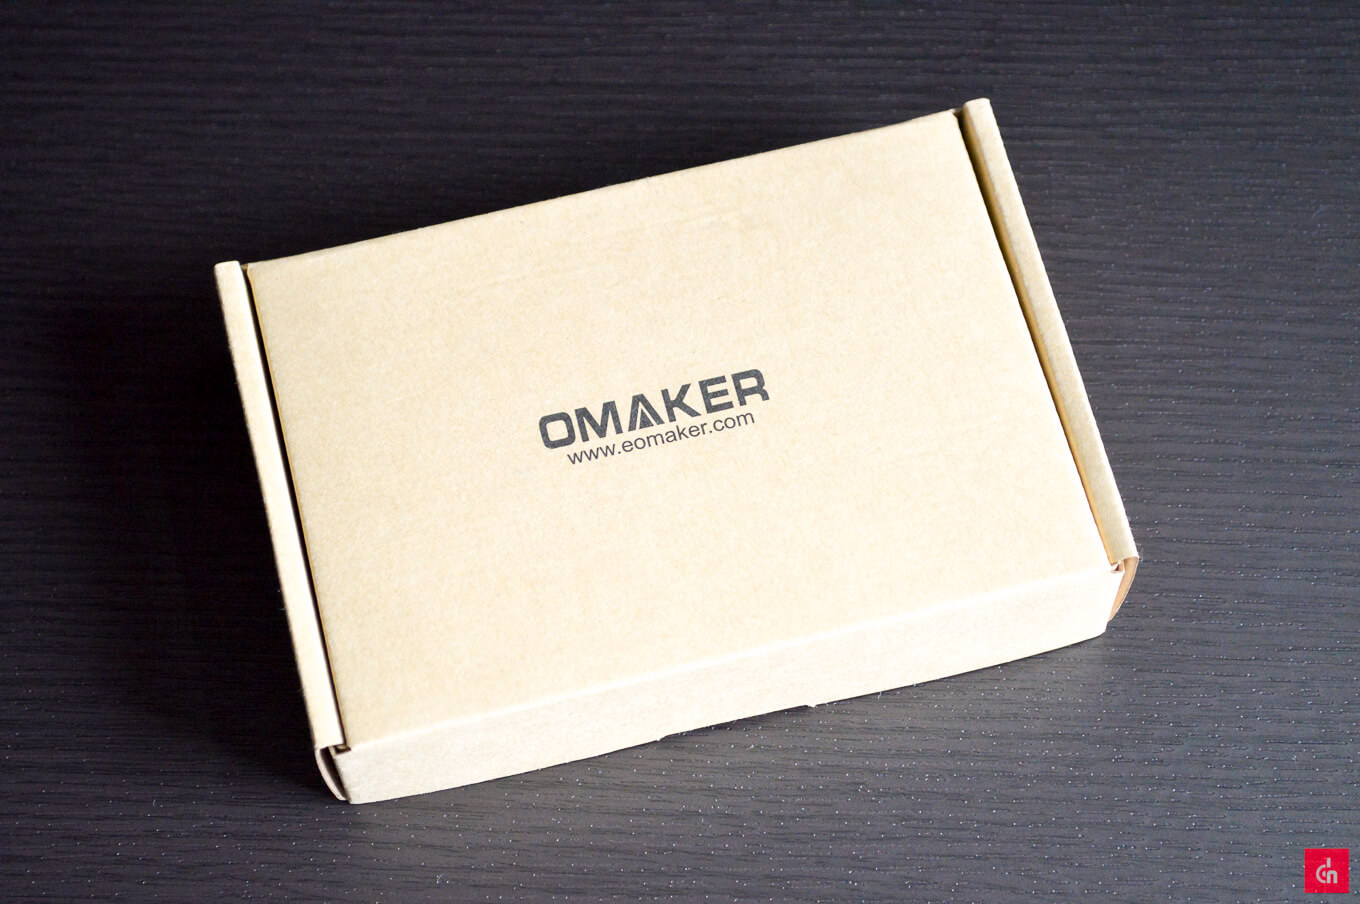 01_20160131_omaker-auxcableset